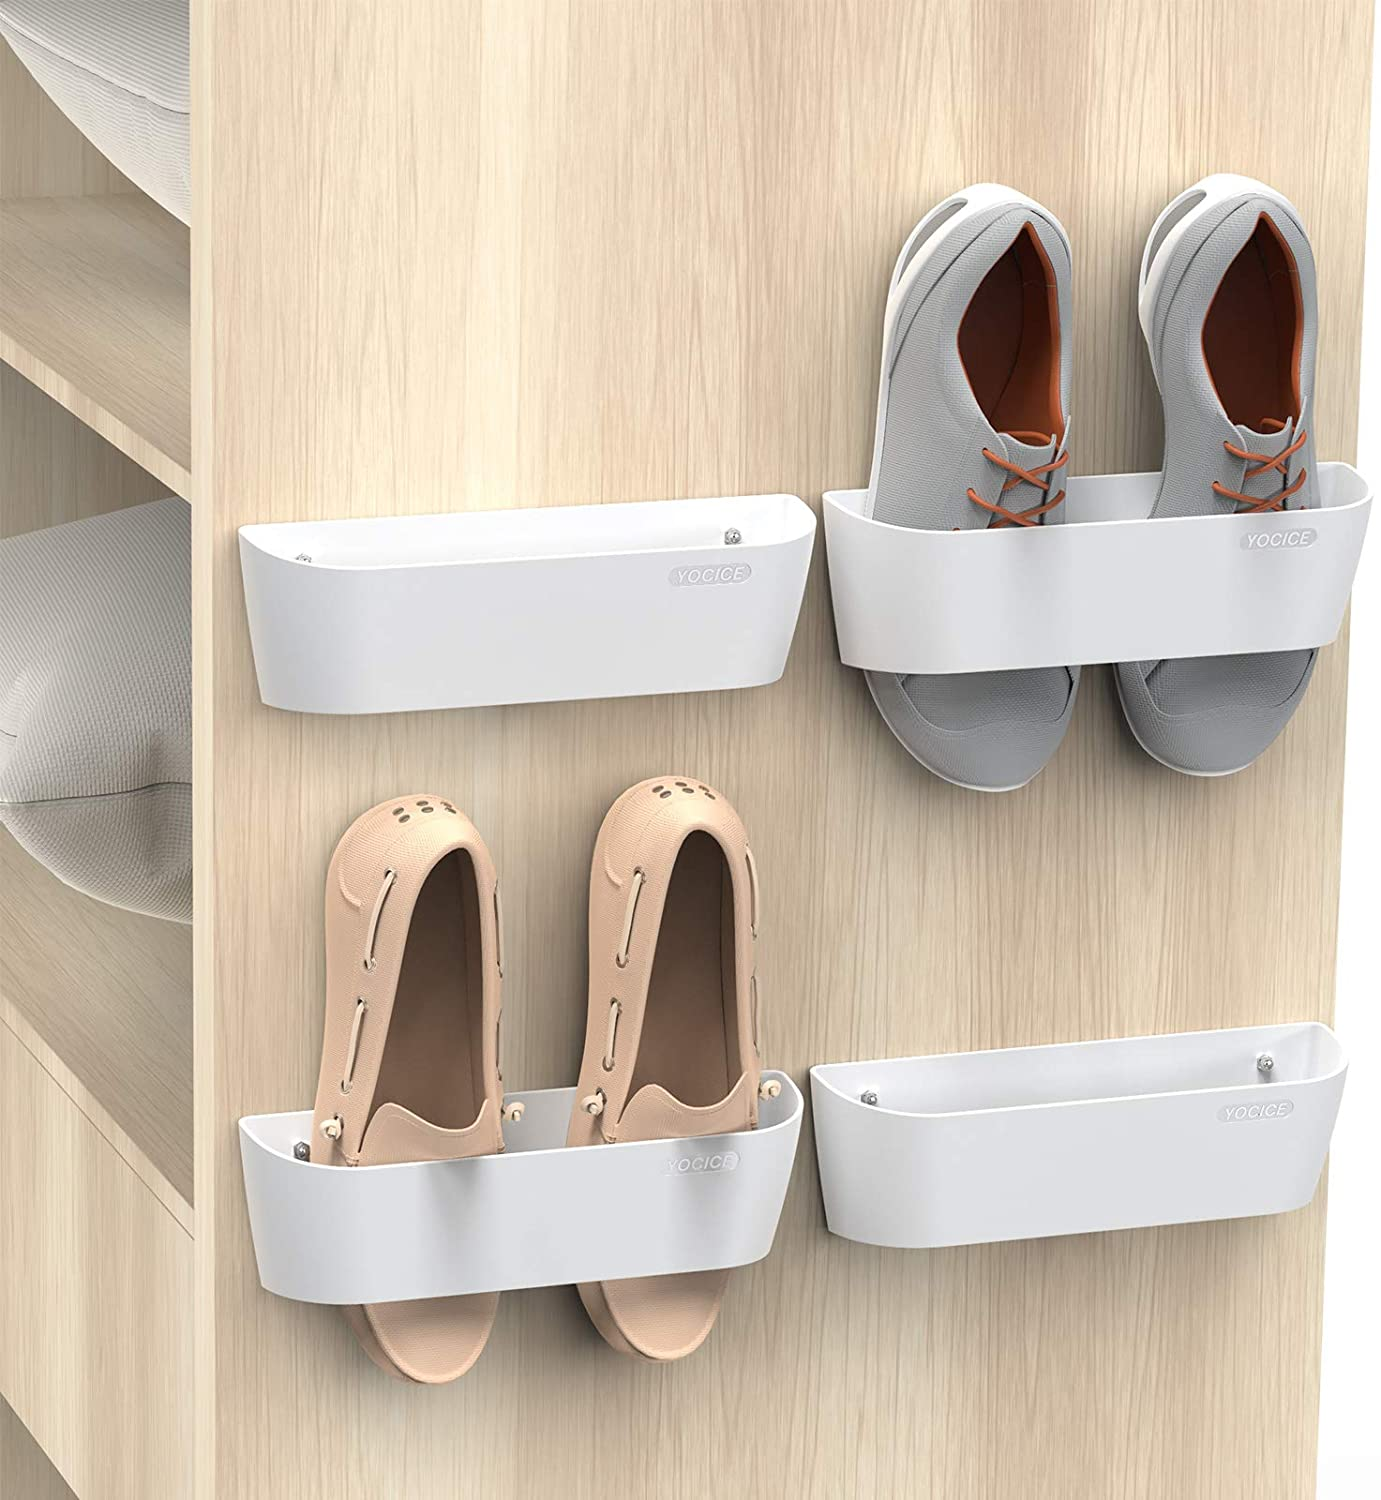 SM03-Black-4 Yocice Wall Mounted Shoes Rack with Sticky Hanging Strips Plastic Shoes Holder Storage Organizer,Door Shoe Hangers